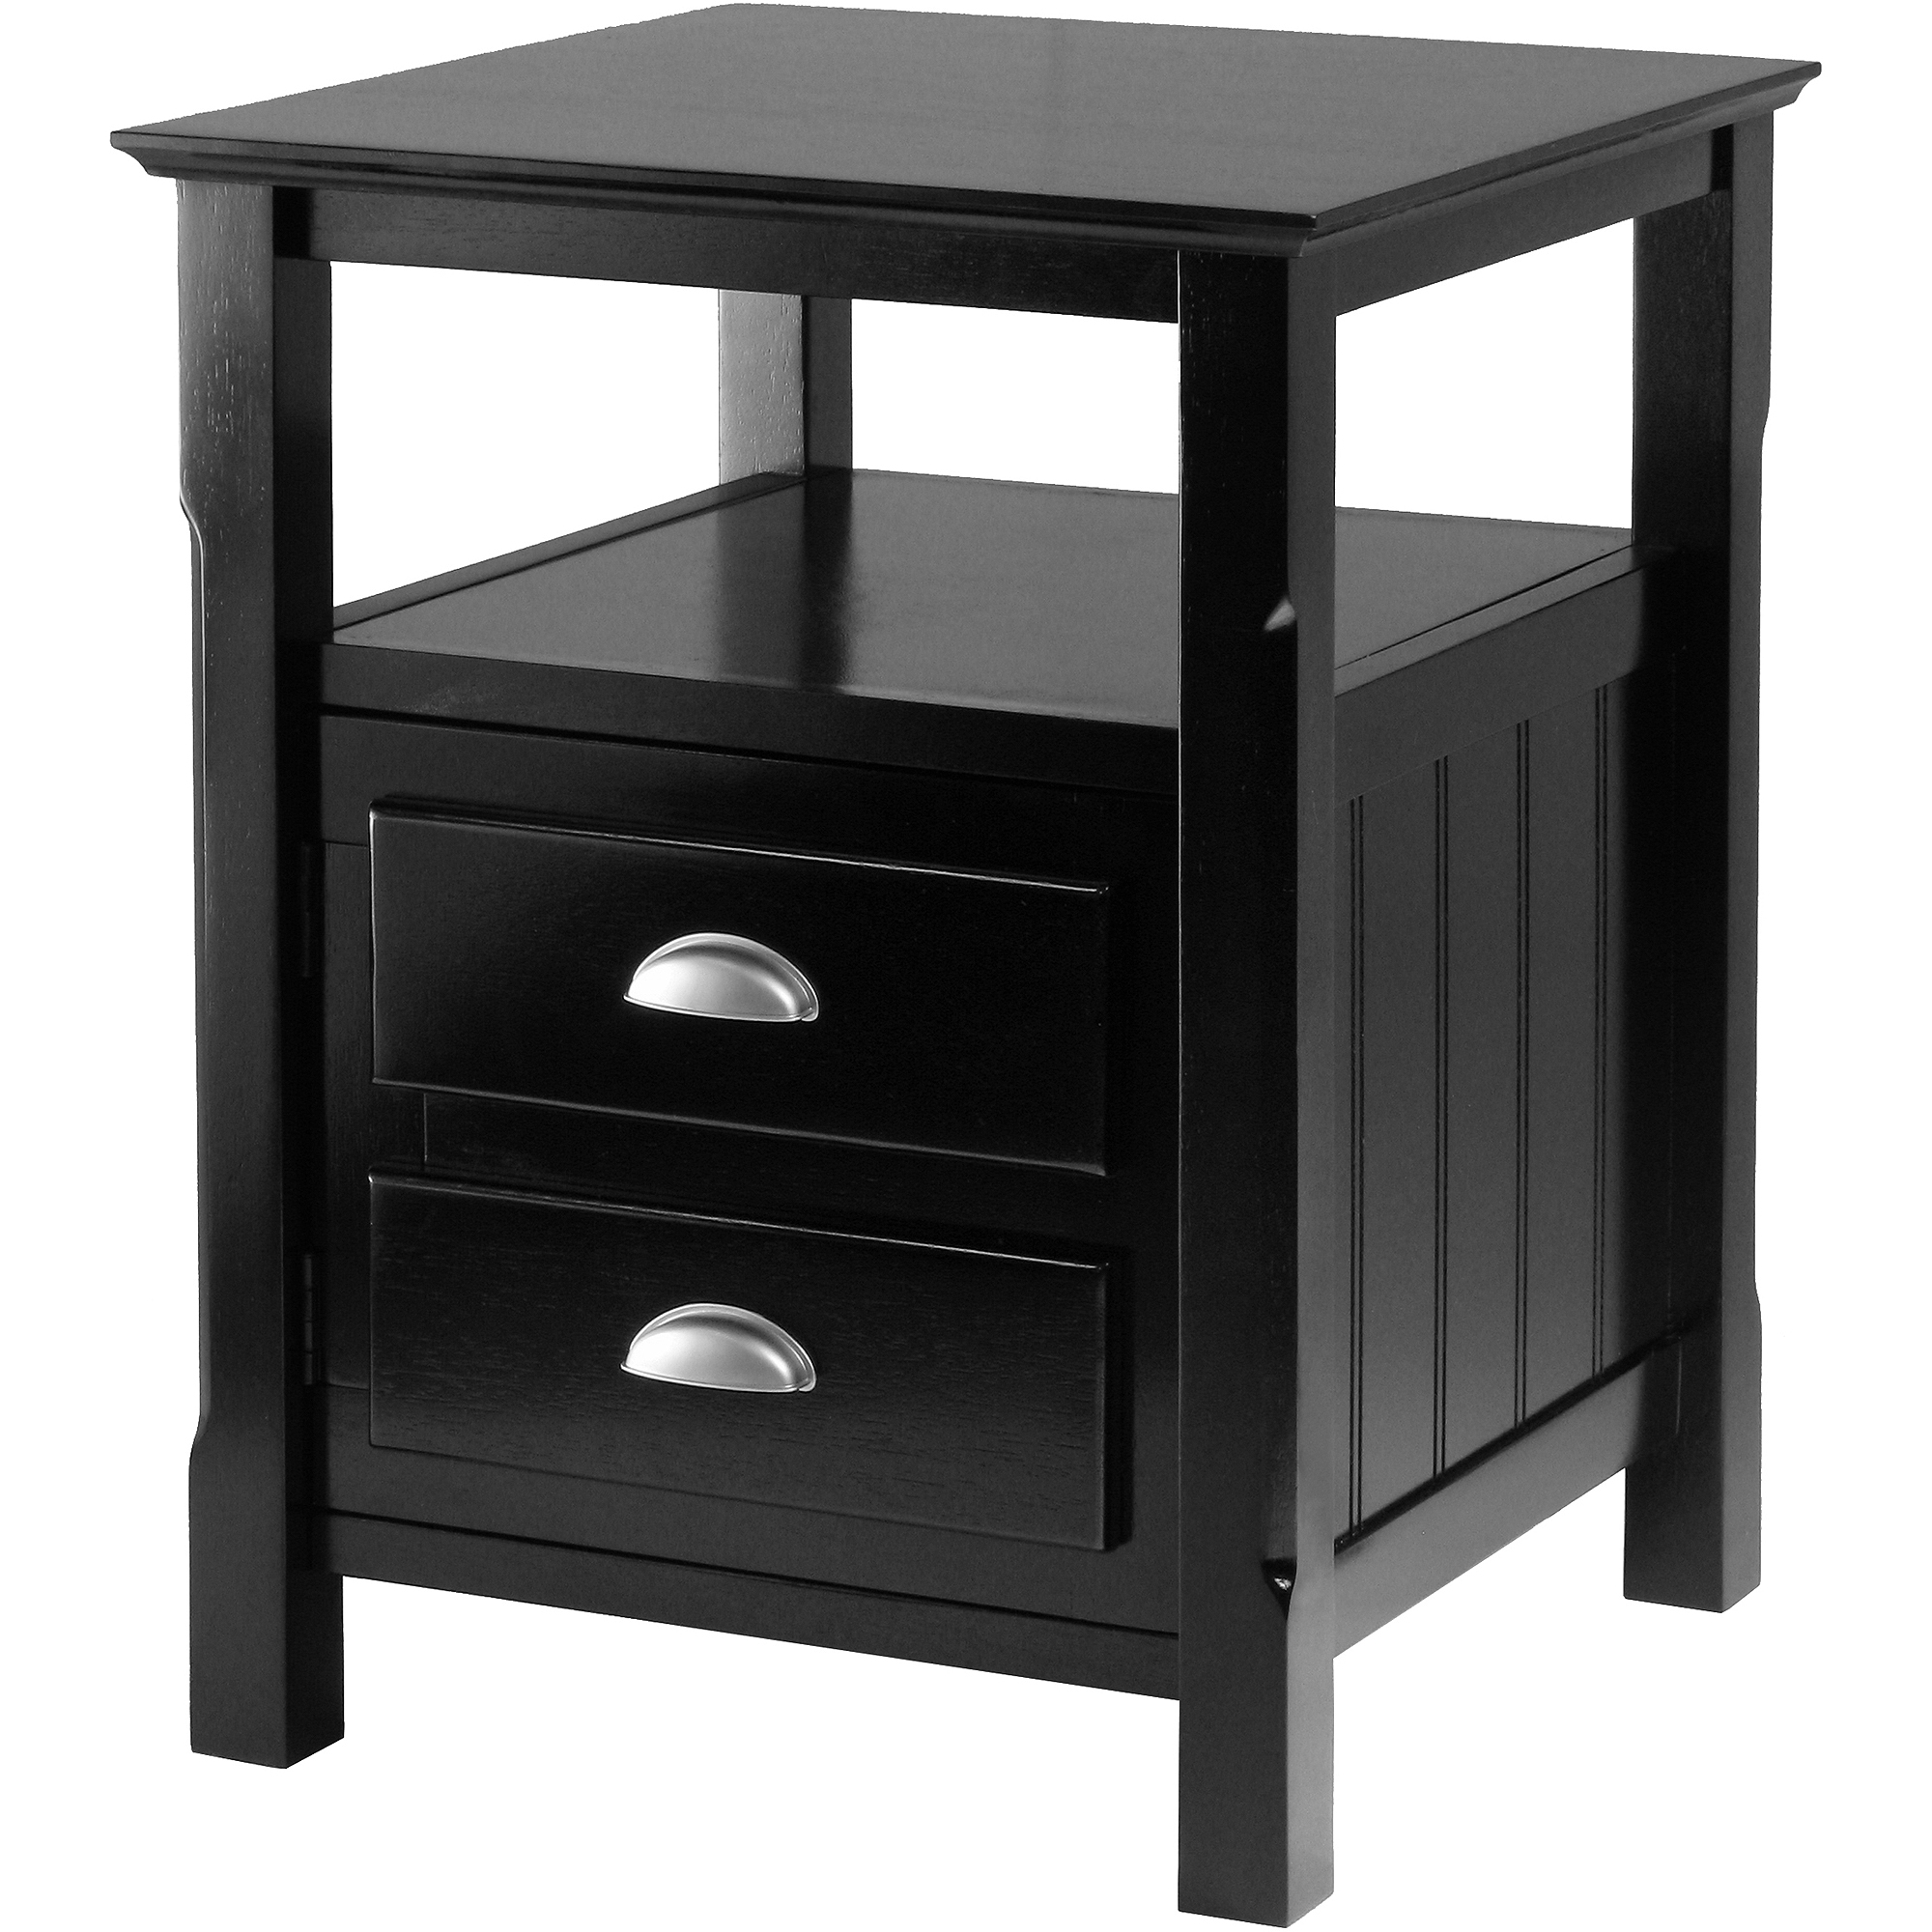 winsome timmy nightstand accent table black instructions what color sage slab furniture clear trunk coffee target chestnut corner hallway cabinet tall patio outdoor cooler gold